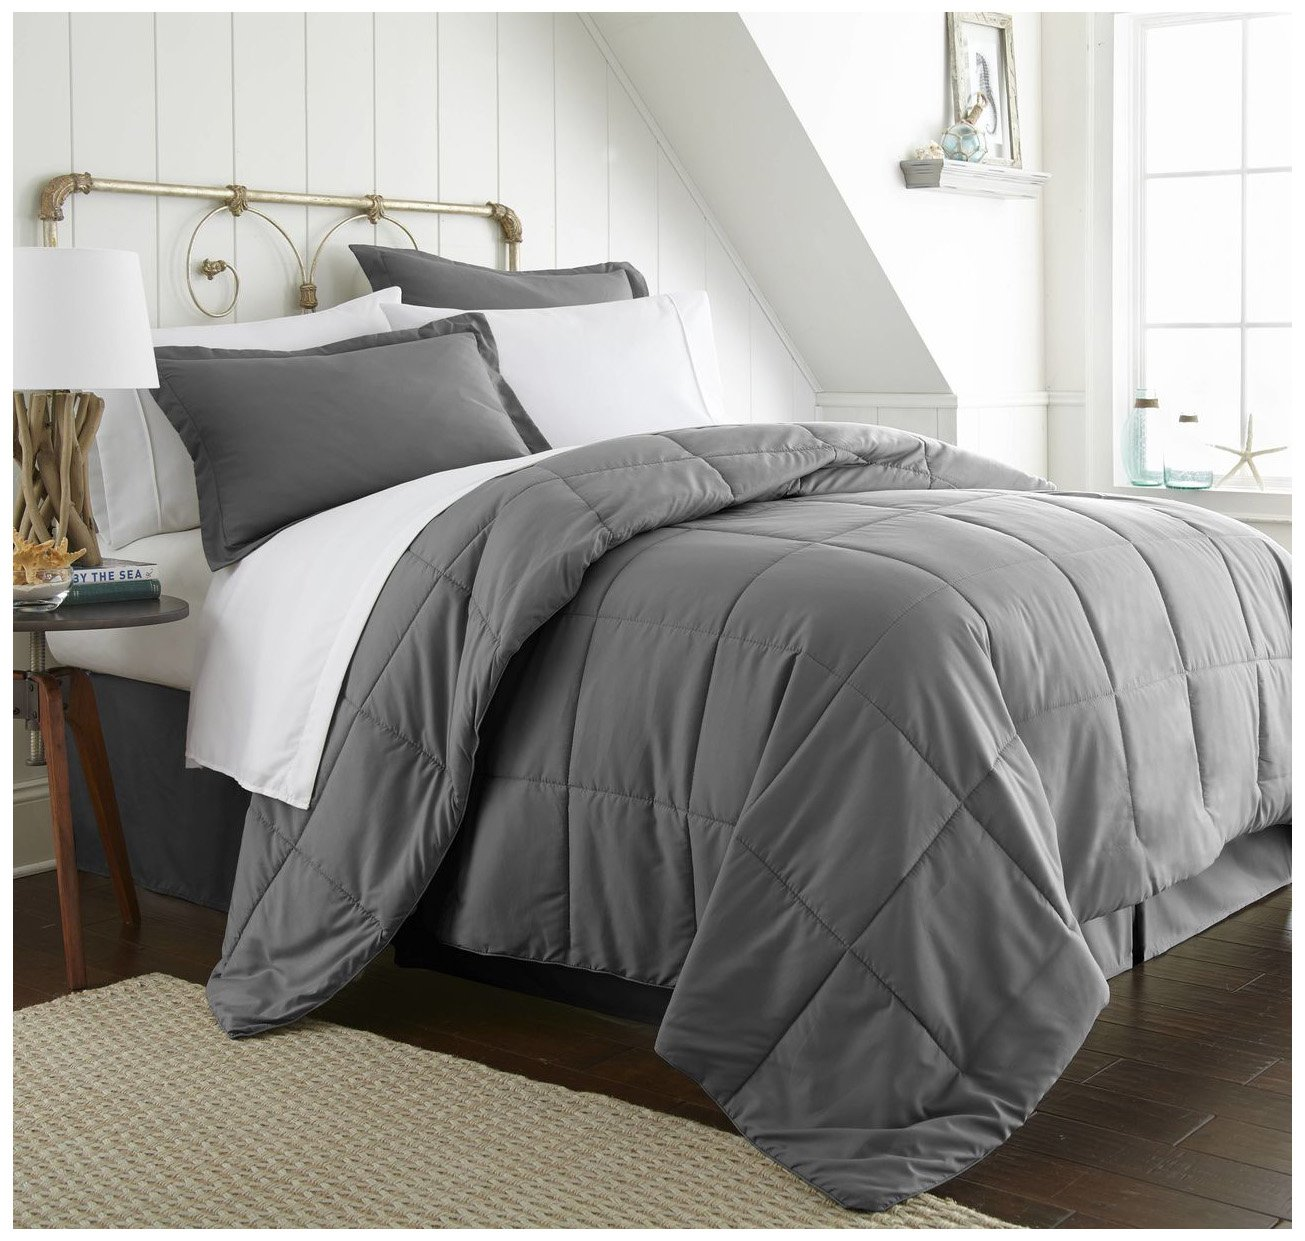 ienjoy Home Bed in a Bag, Twin, Gray